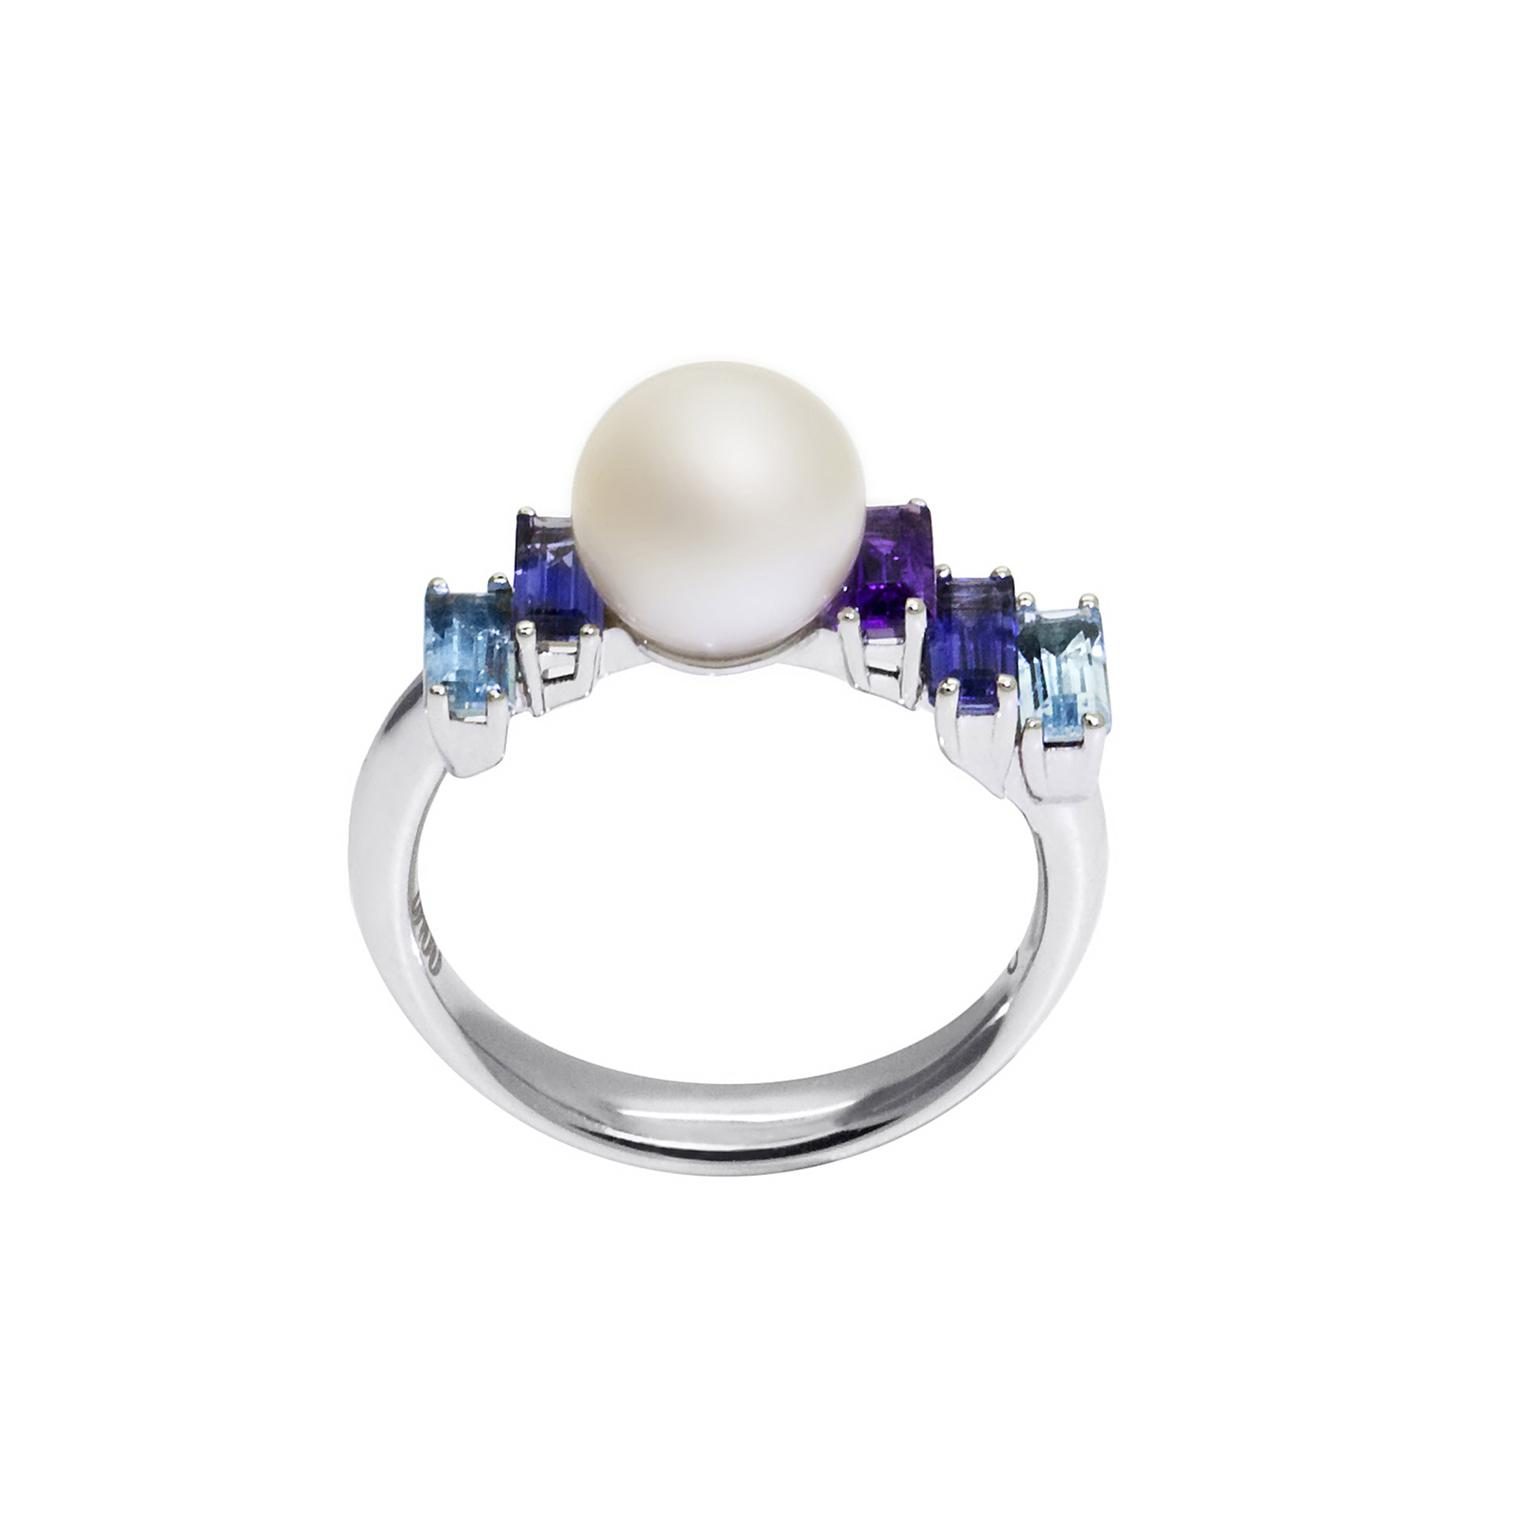 Daou pearl ring